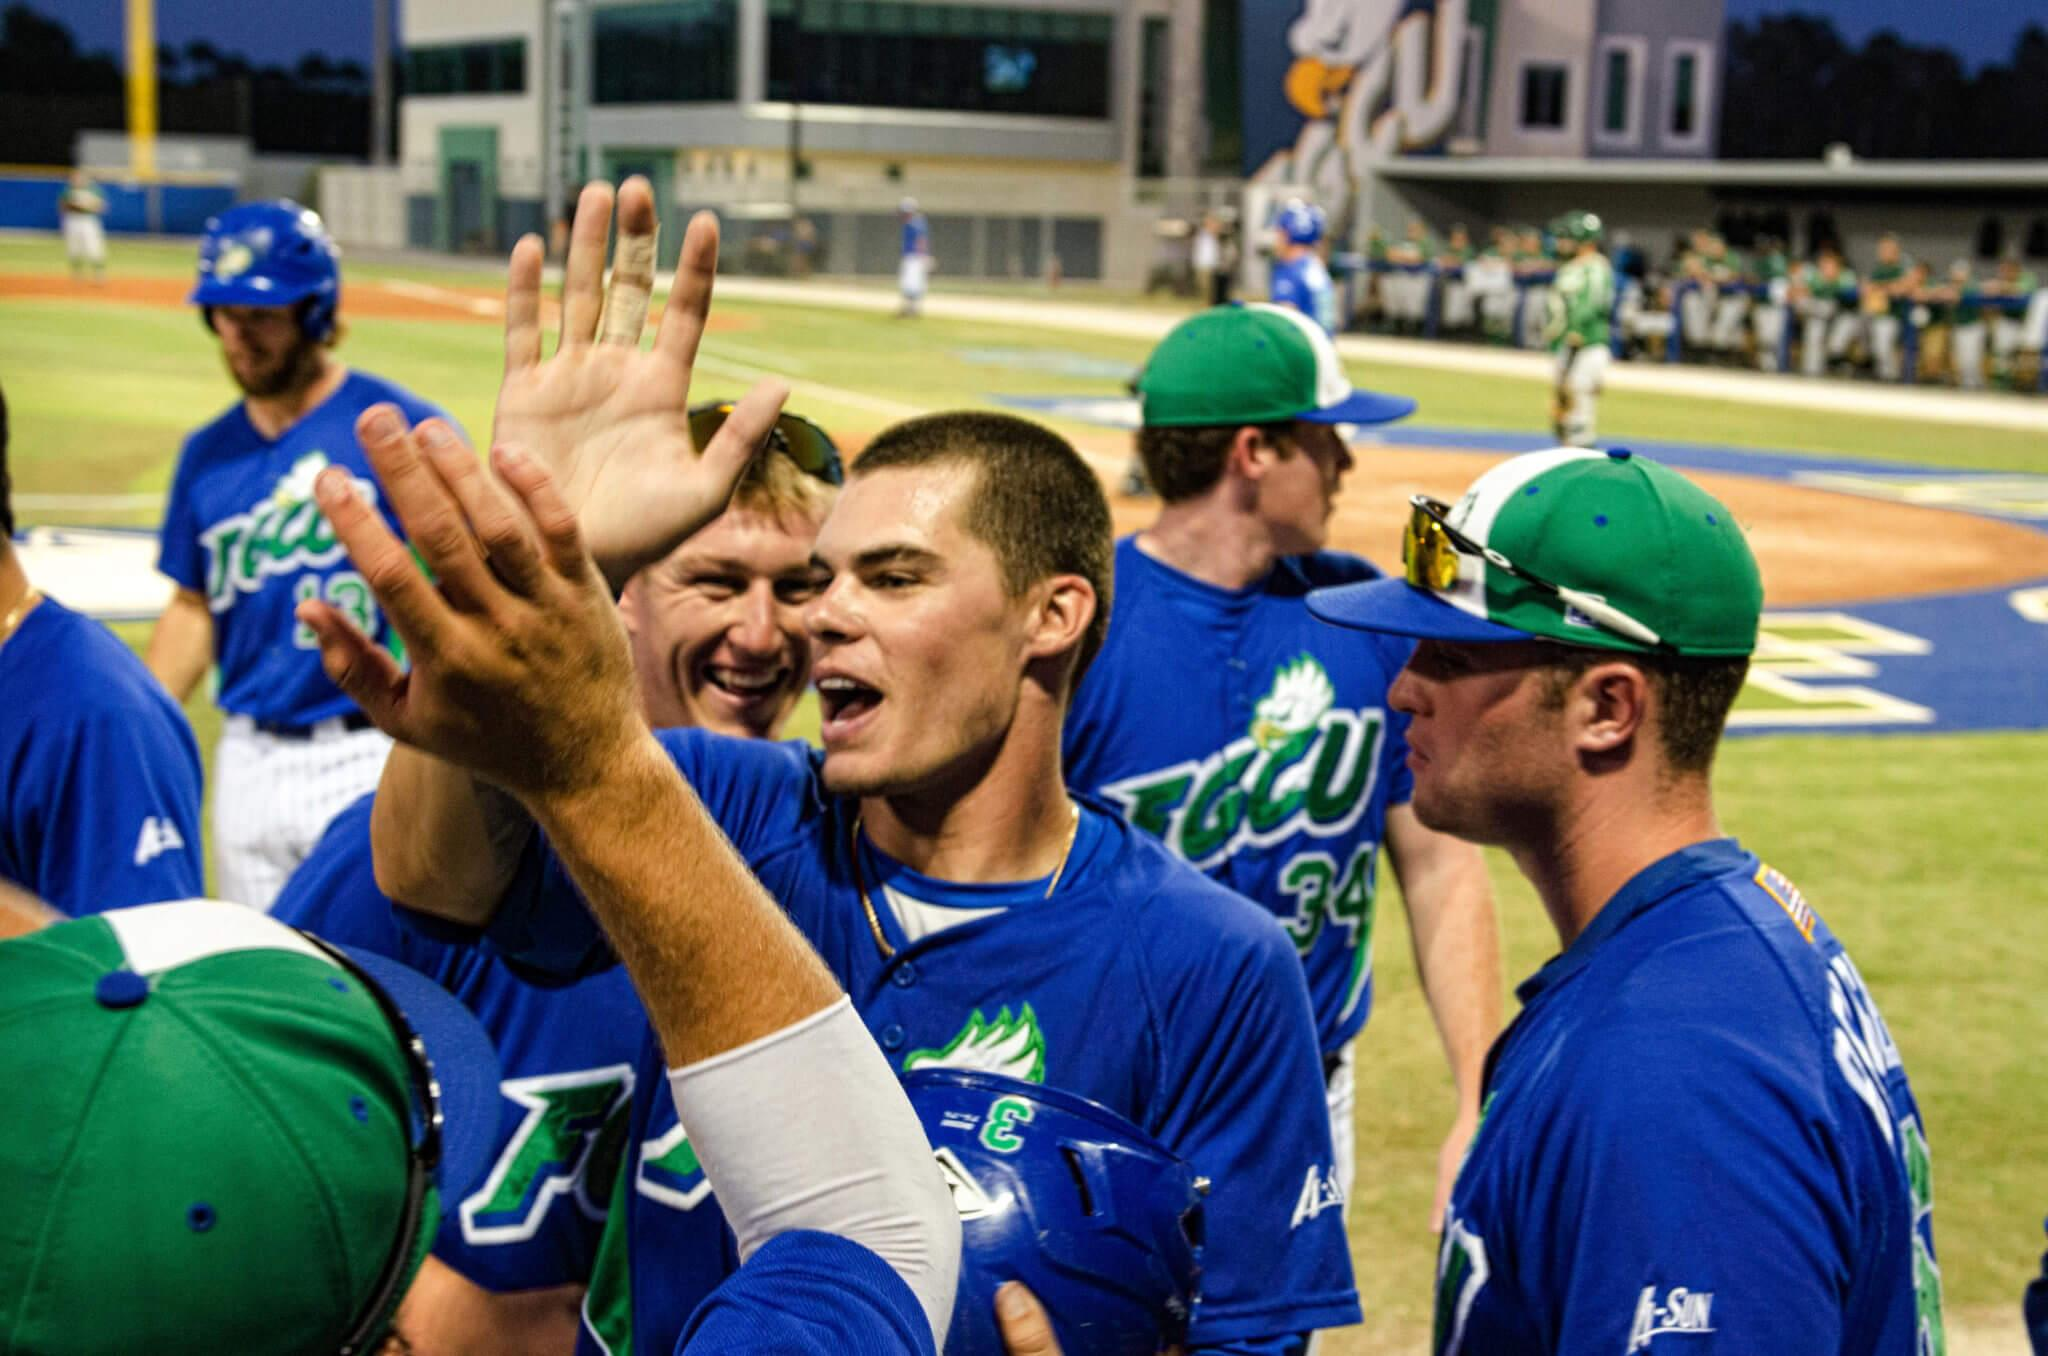 Redemption: English leads Eagles to victory over JU